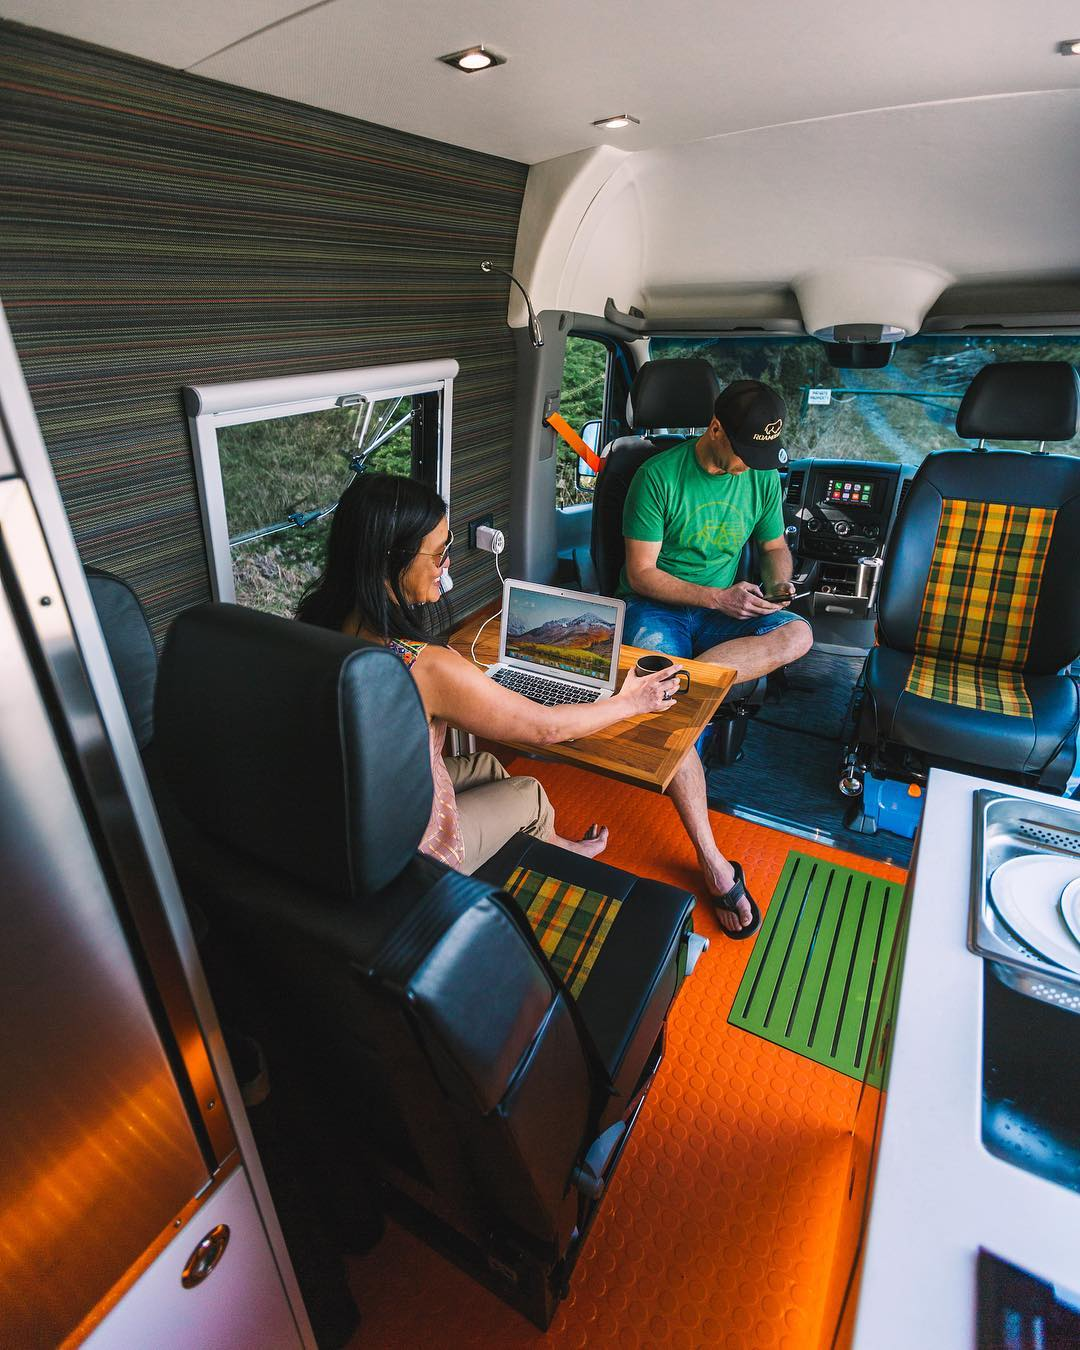 getting internet on the road and working as a digital nomad in a campervan conversion or RV